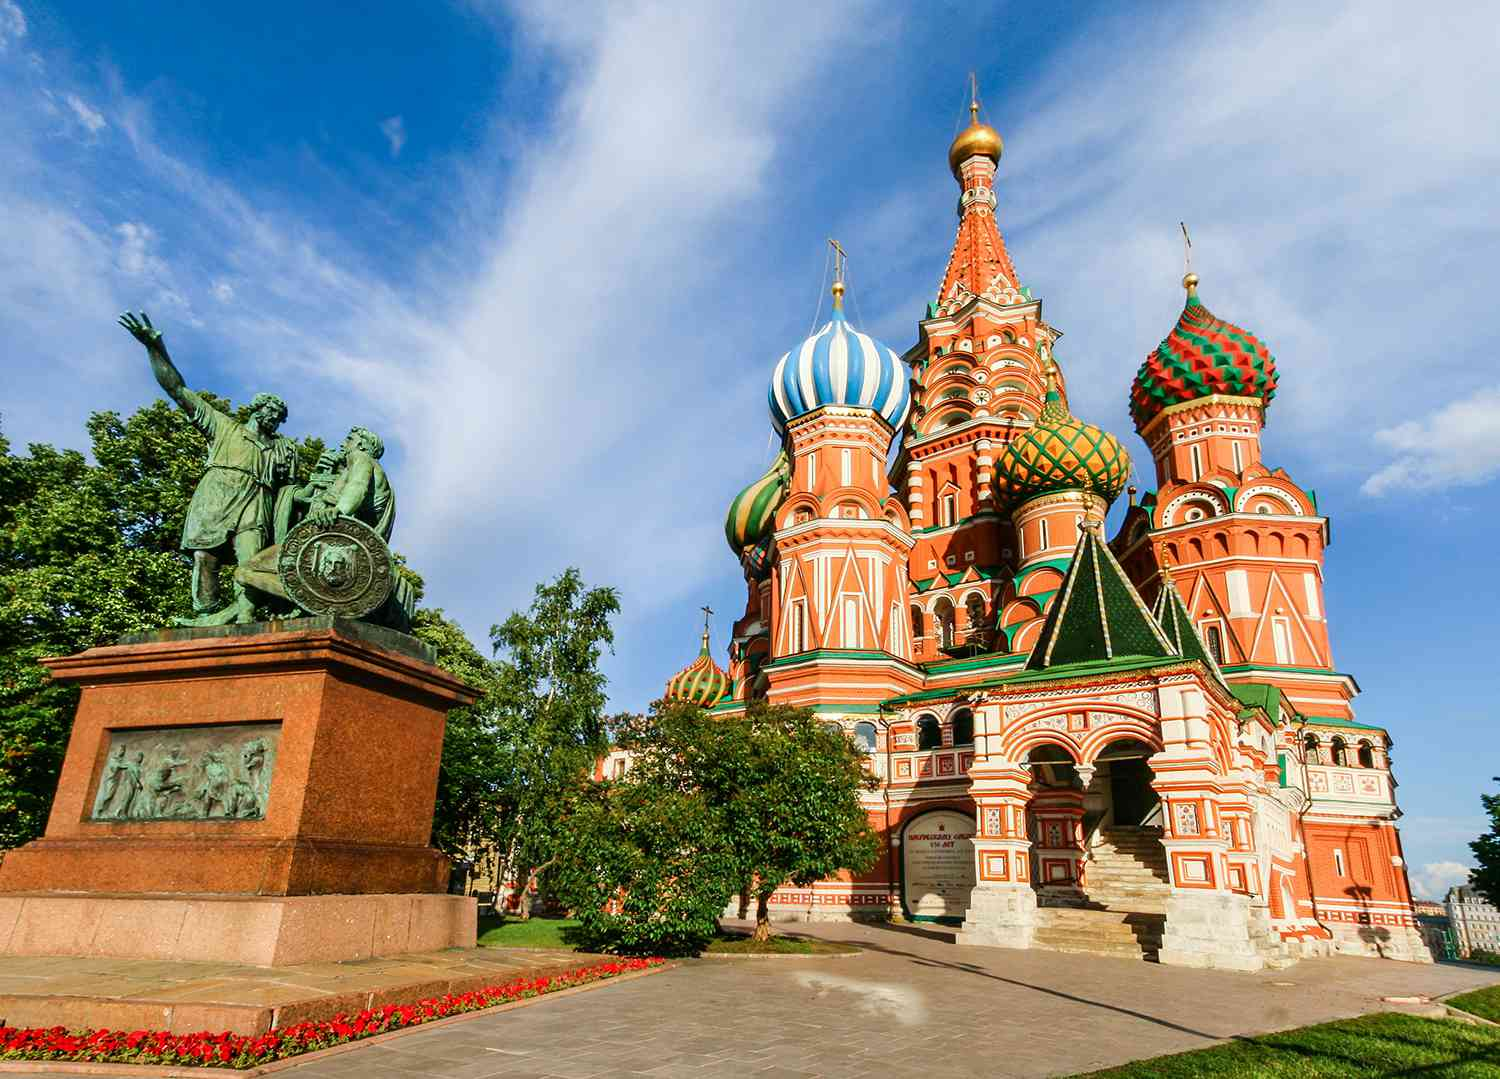 St Basil's Cathedral, in Red Square, Moscow, Russia